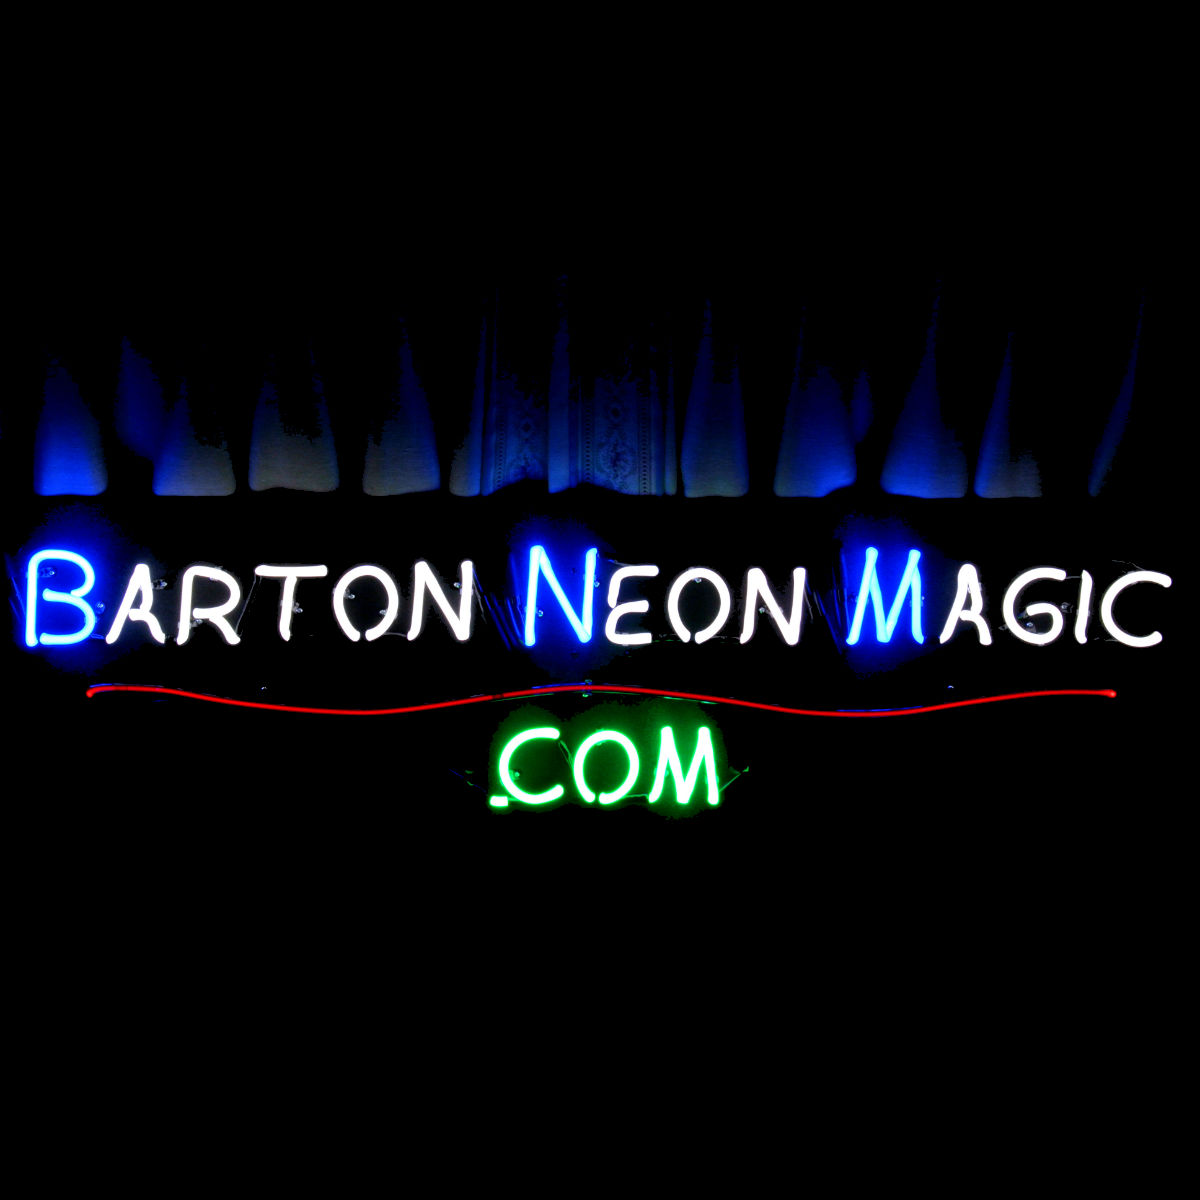 TROPICAL NEON LIGHT ARTWORKS by John Barton - BartonNeonMagic.com